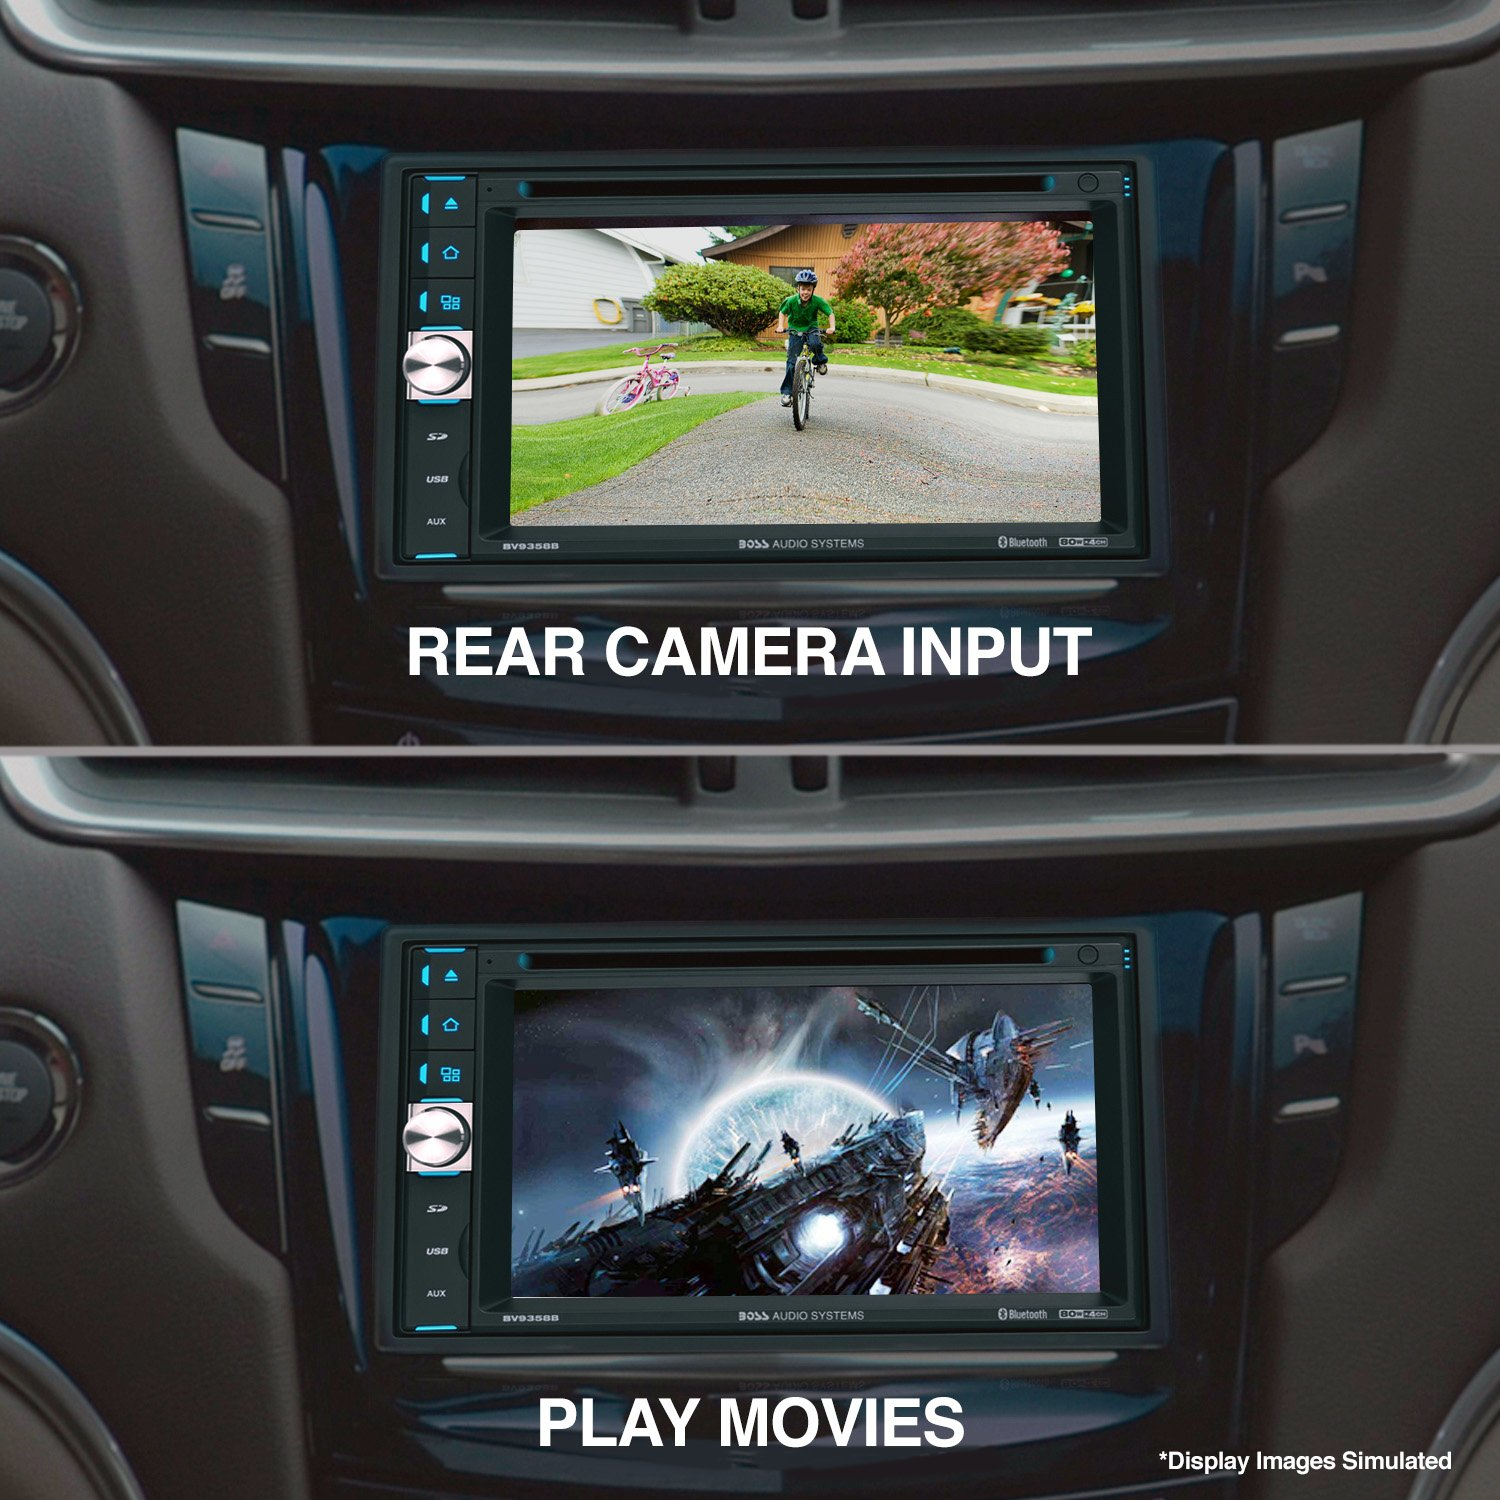 Boss Audio BV9358B using its lcd screen to view rear camera and movies